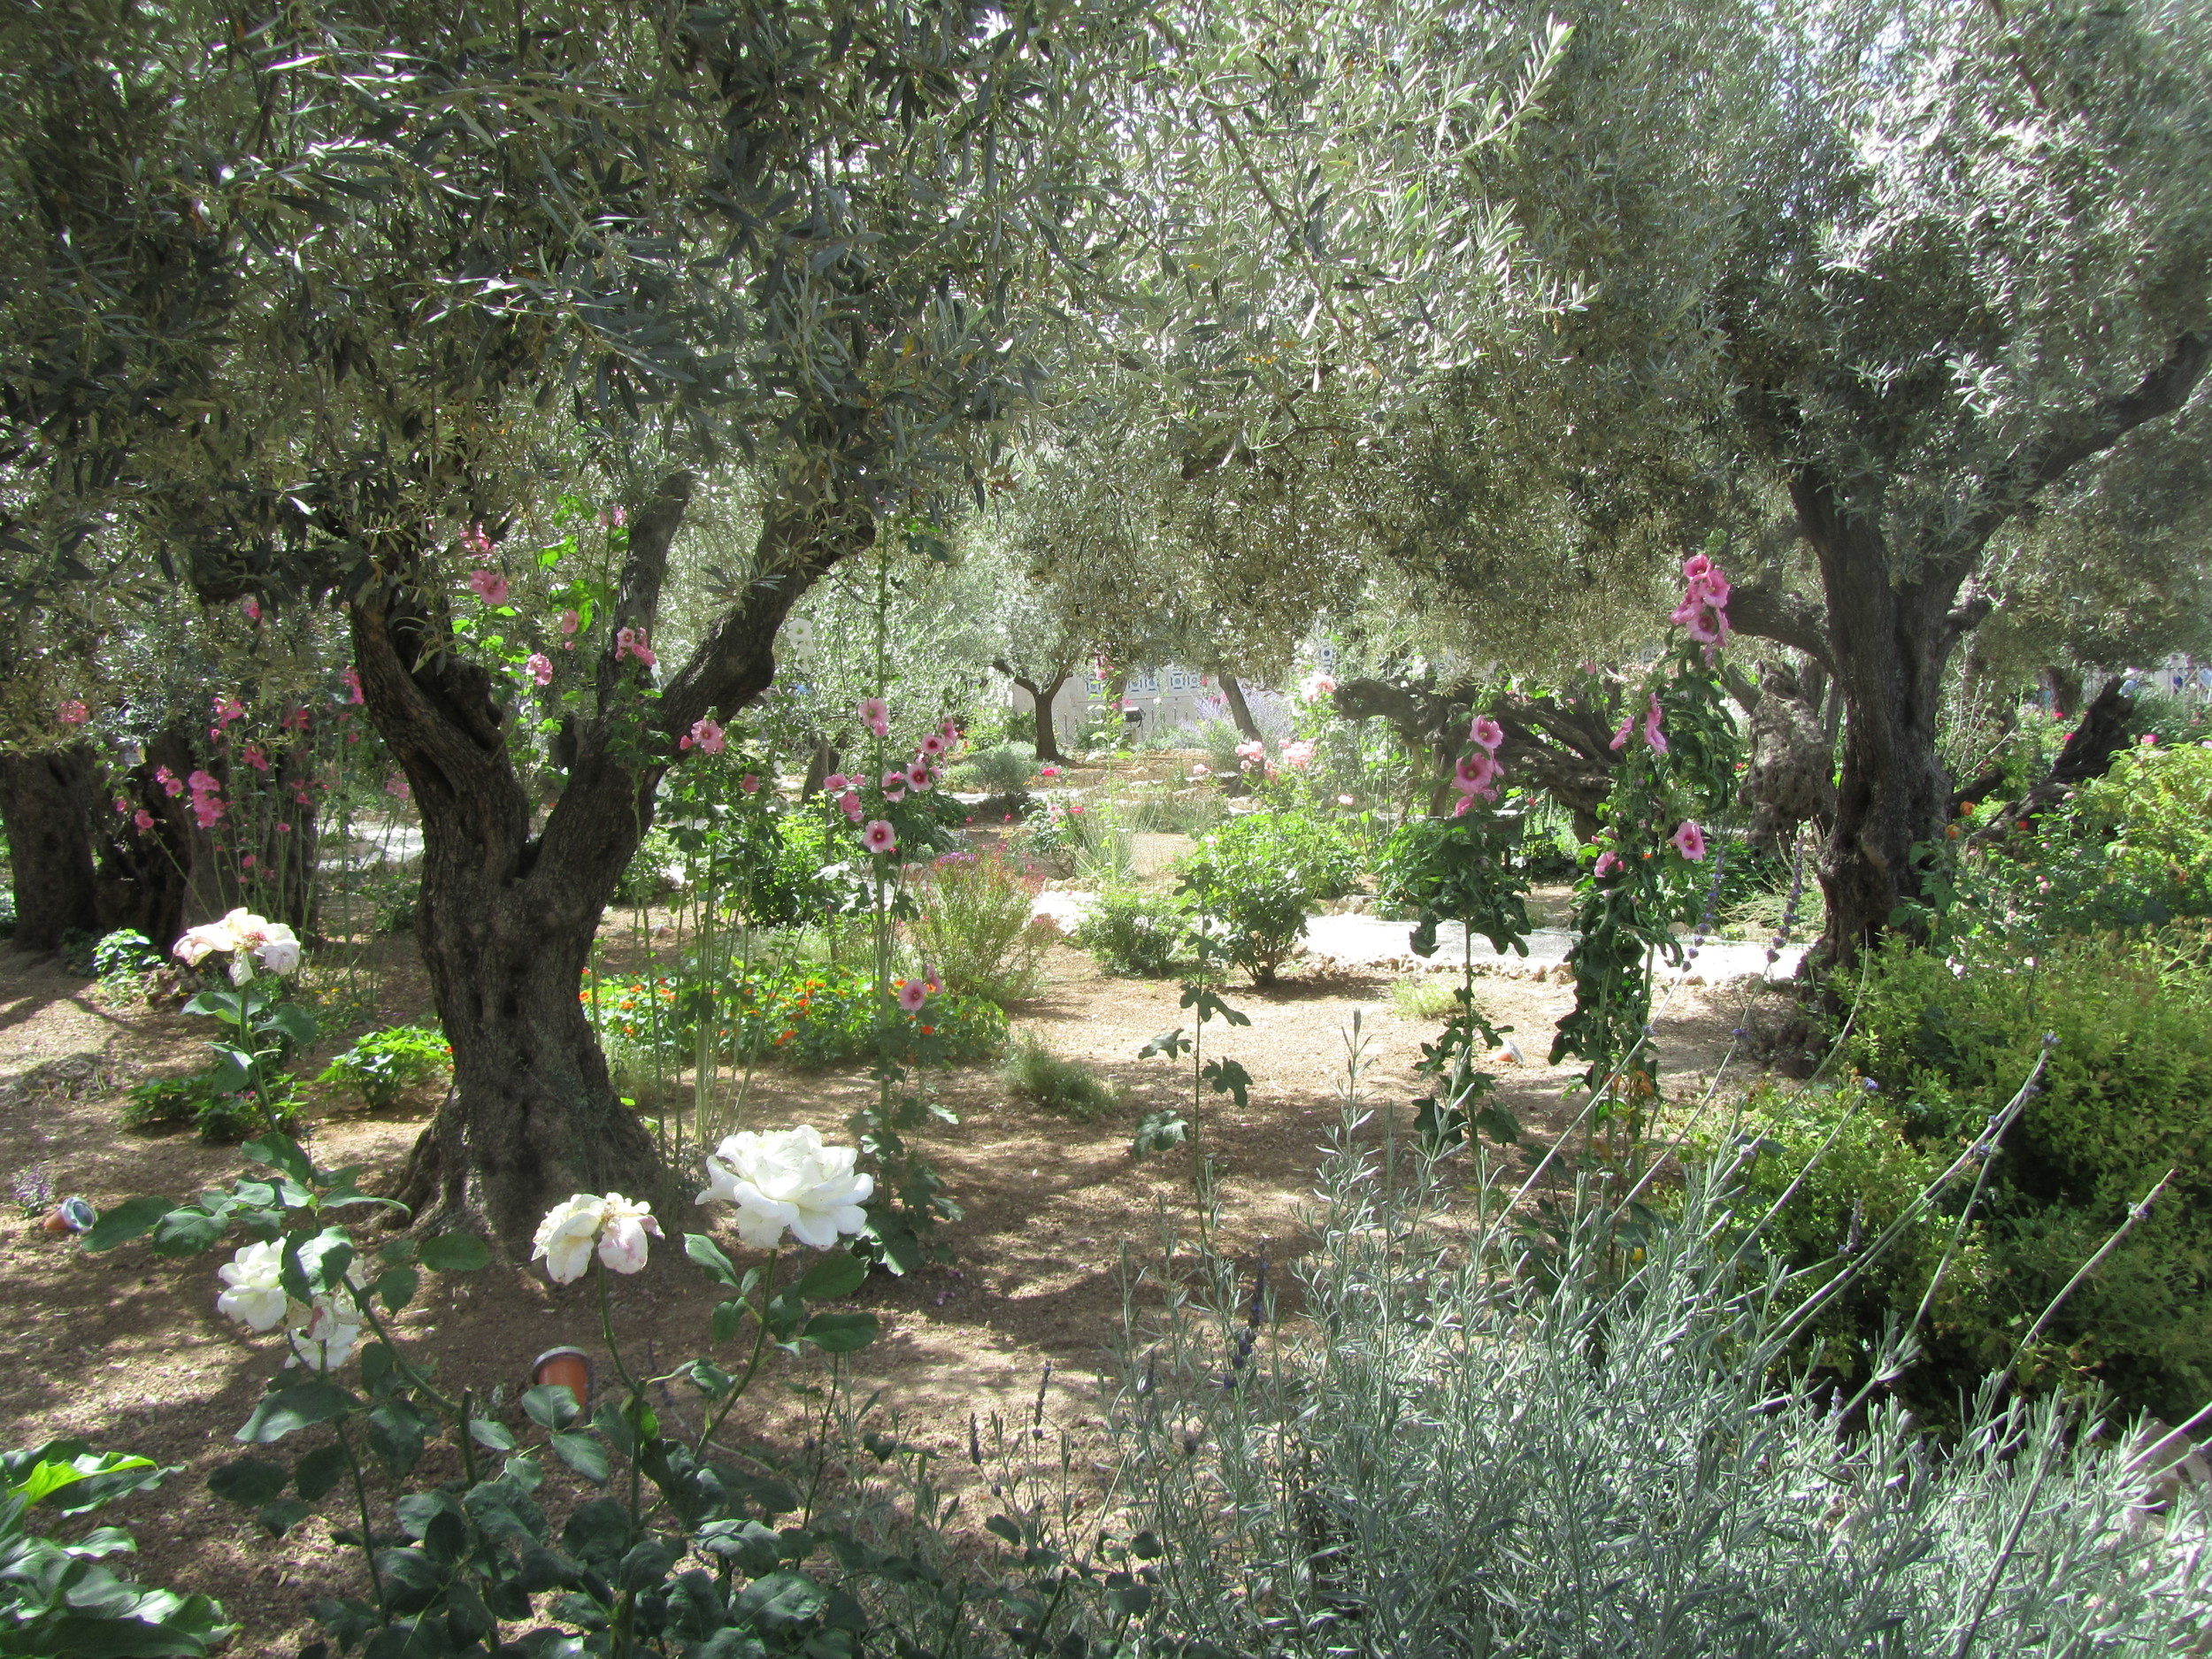 The Ancient Garden of Gethsemane